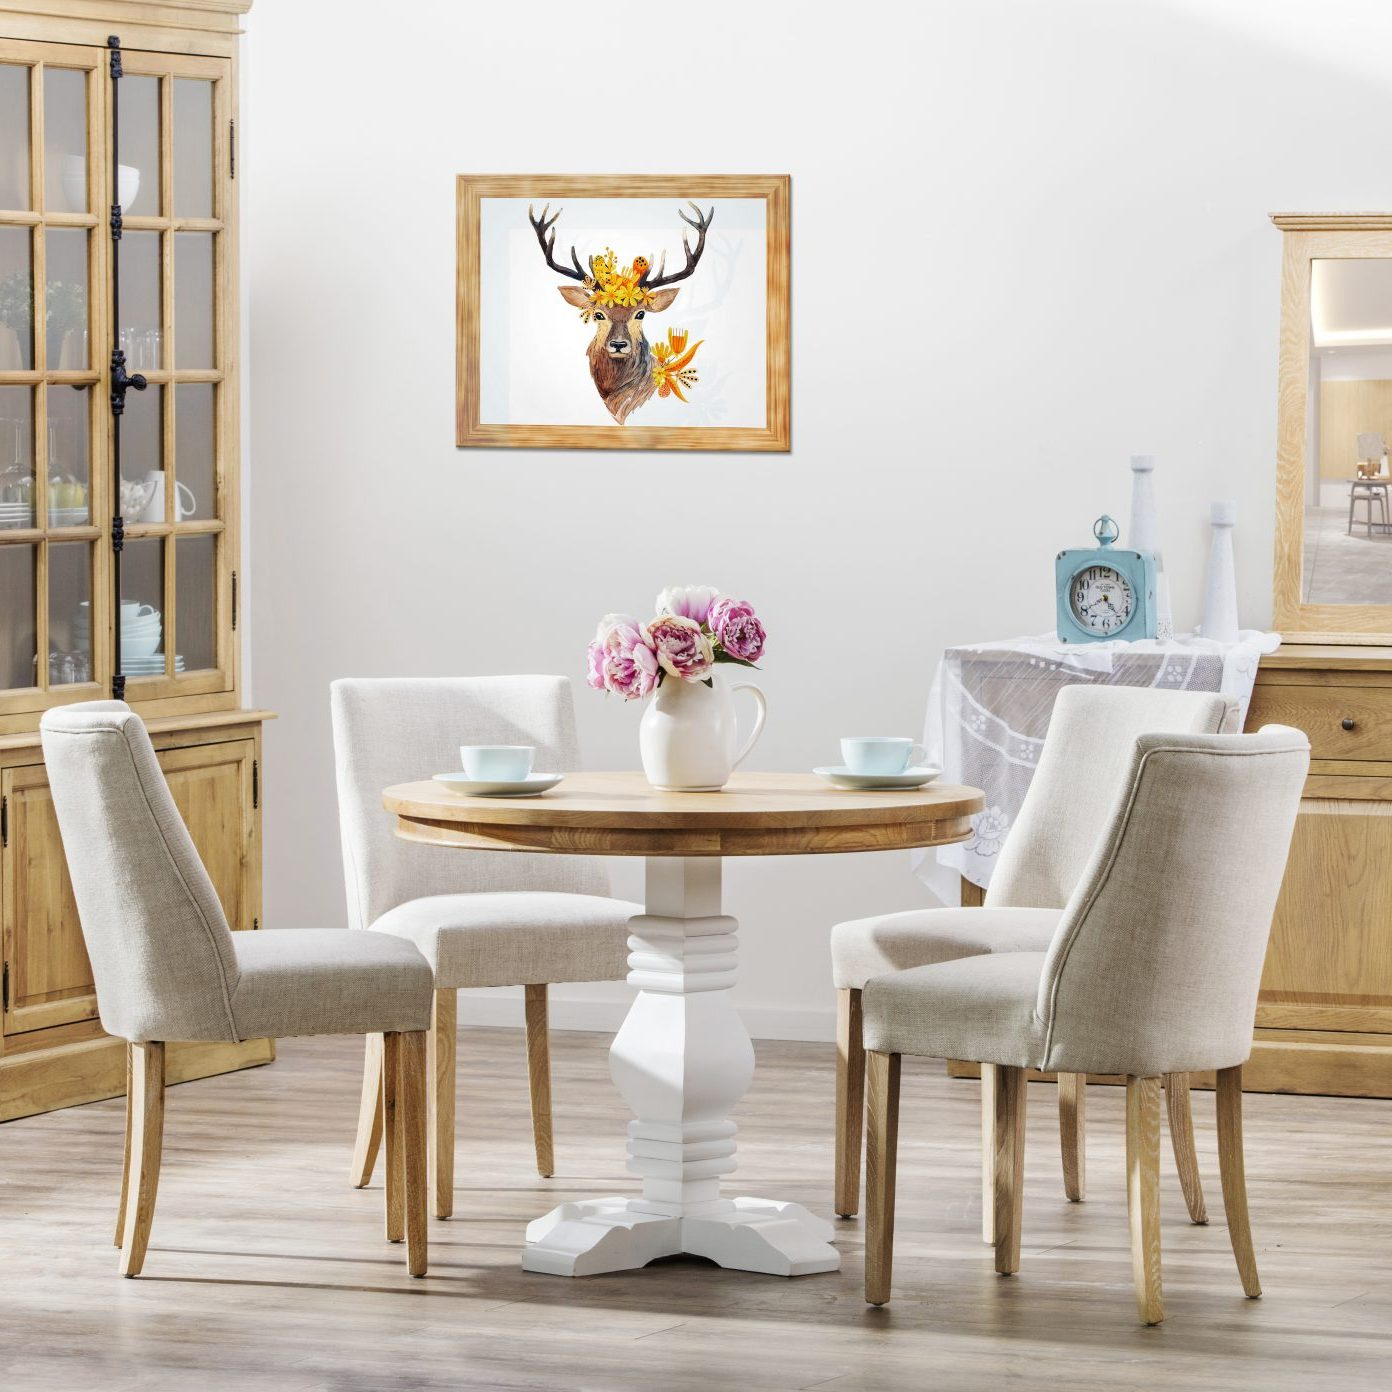 Dining Room Wood Furniture - All 4 Furnishings